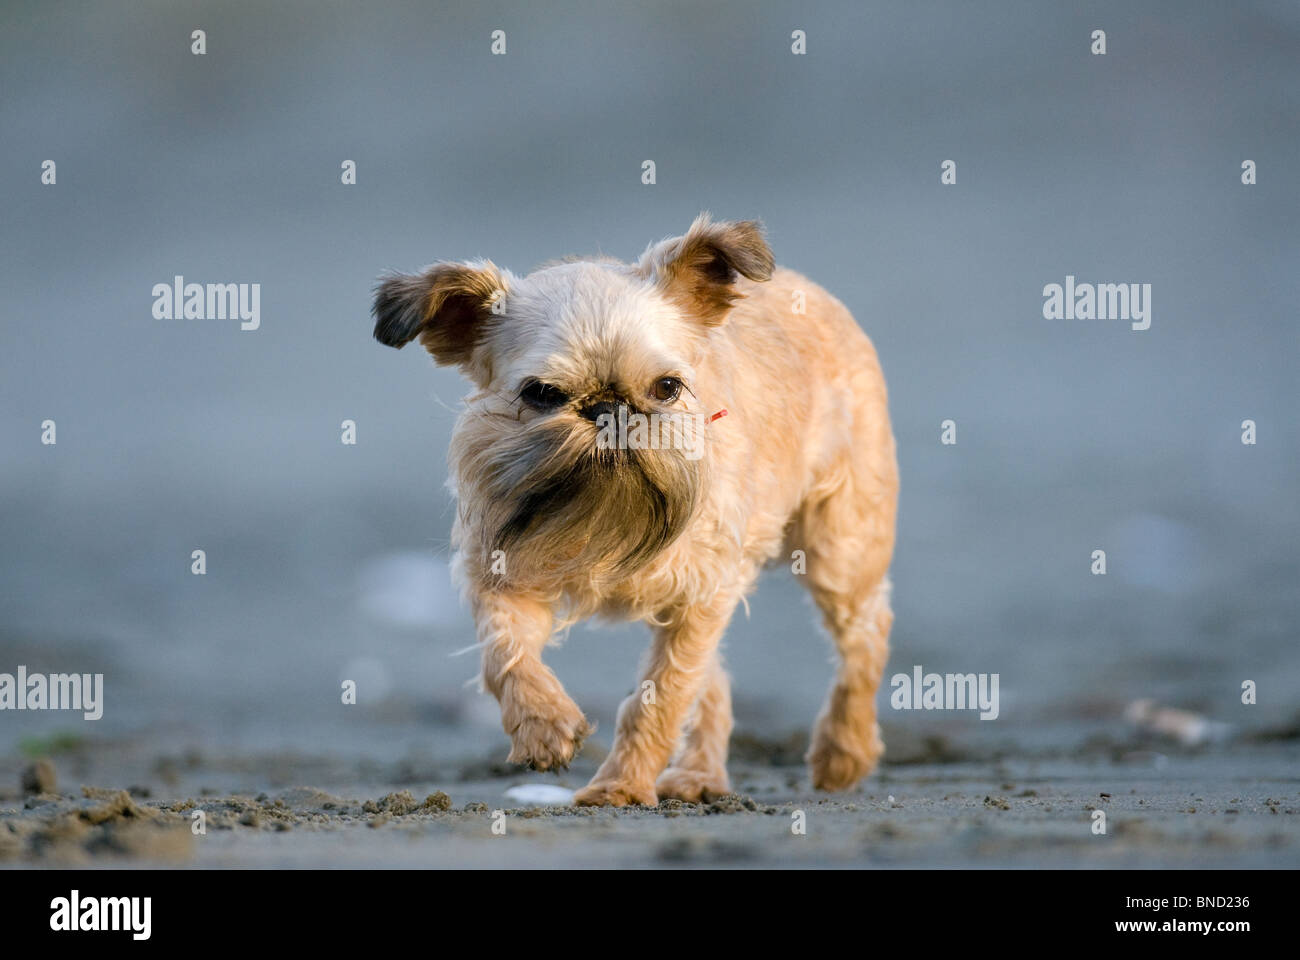 Griffon dog Canis lupus familiaris Stock Photo